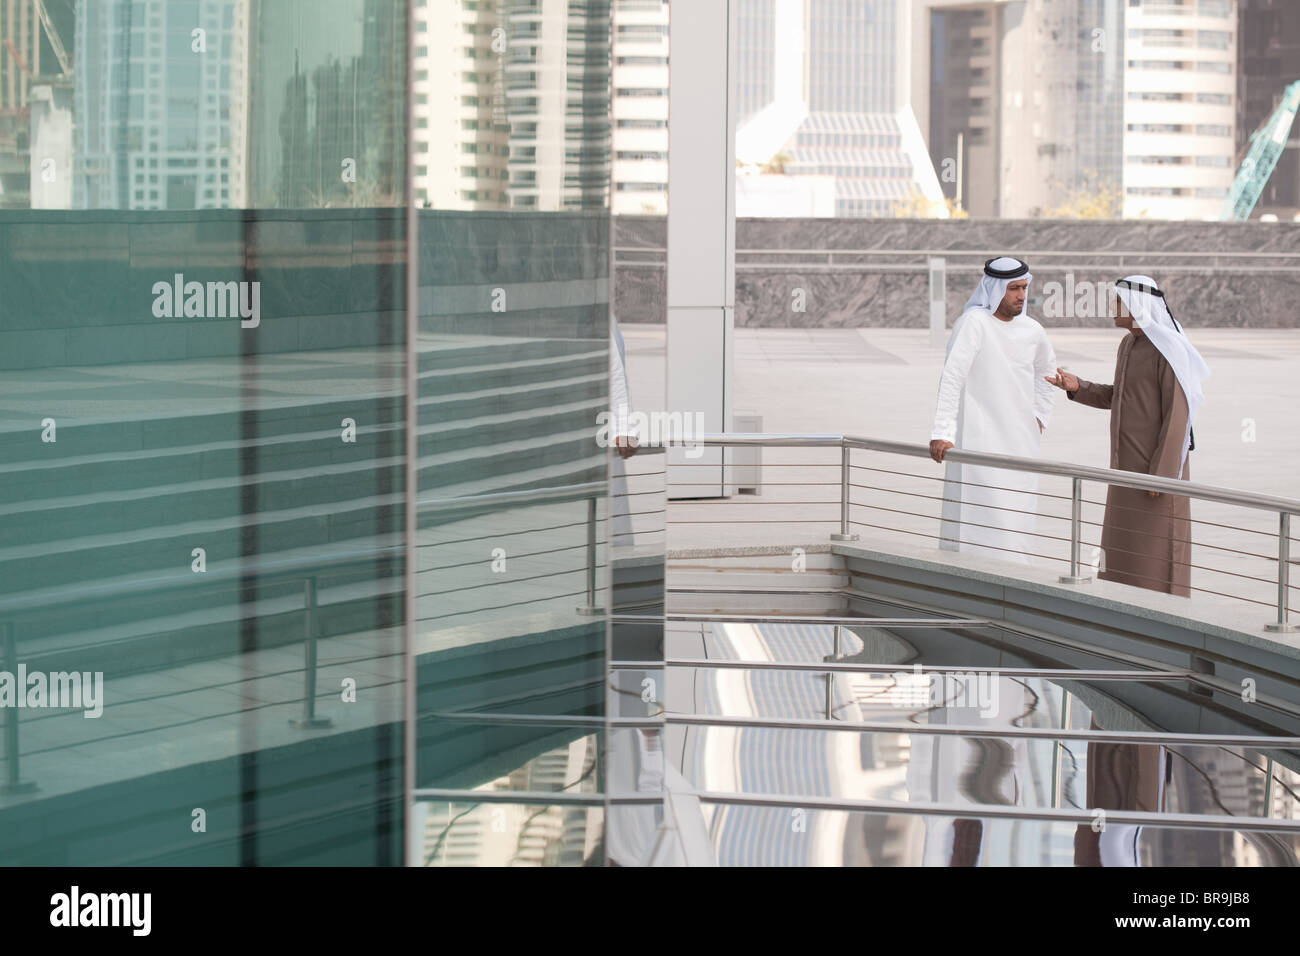 Middle eastern businessmen by office building - Stock Image